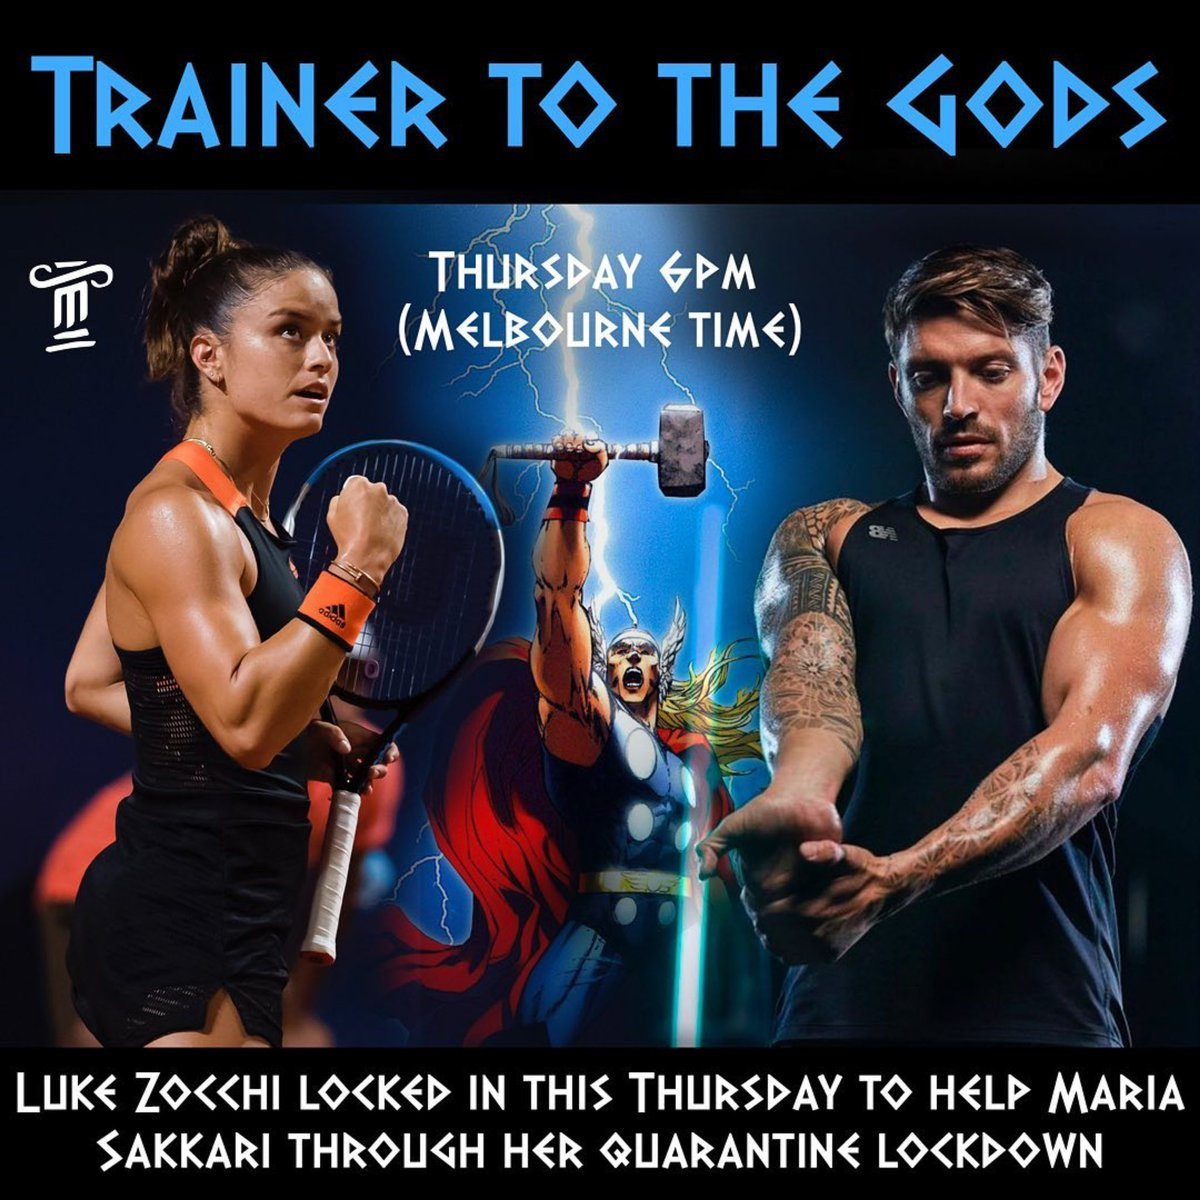 💥 #ClashOfTheTitans: Maria Sakkari X Luke Zocchi in the ultimate Instagram LIVE Spartan workout 🏋️‍♀️ 🏋️‍♂️  Head to @mariasakkari's Instagram 6pm AEDT Thursday for a ringside seat!   #SparringWithASpartan